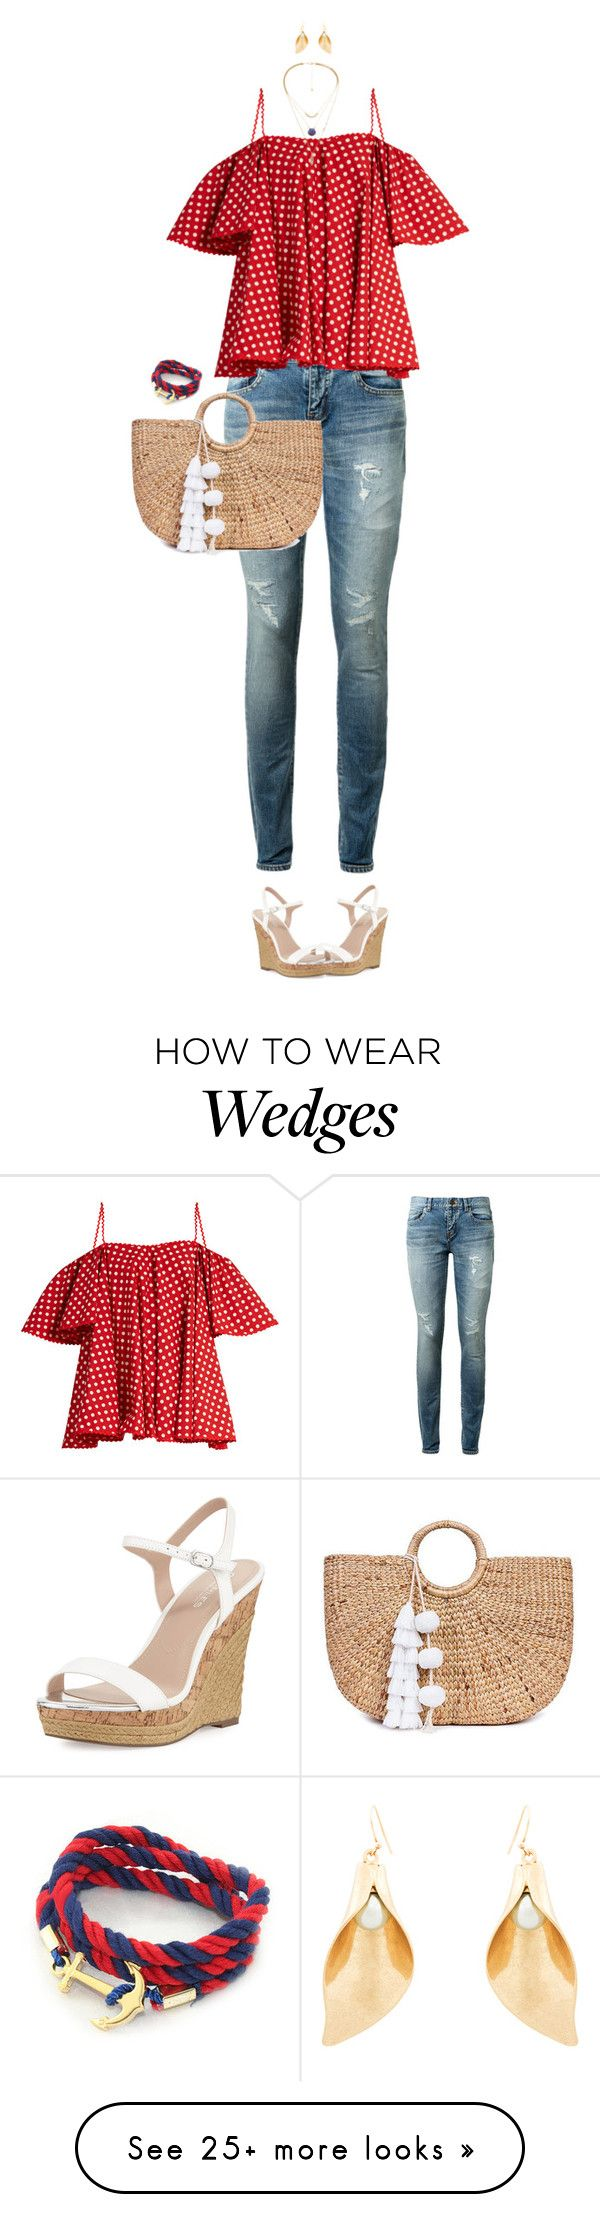 """""""Re, White And Blue"""" by ittie-kittie on Polyvore featuring Yves Saint Laurent, Anna October, Charles by Charles David, JADE TRIBE, Lulu Frost, Summer, summerstyle, summerfashion and redwhiteblue"""